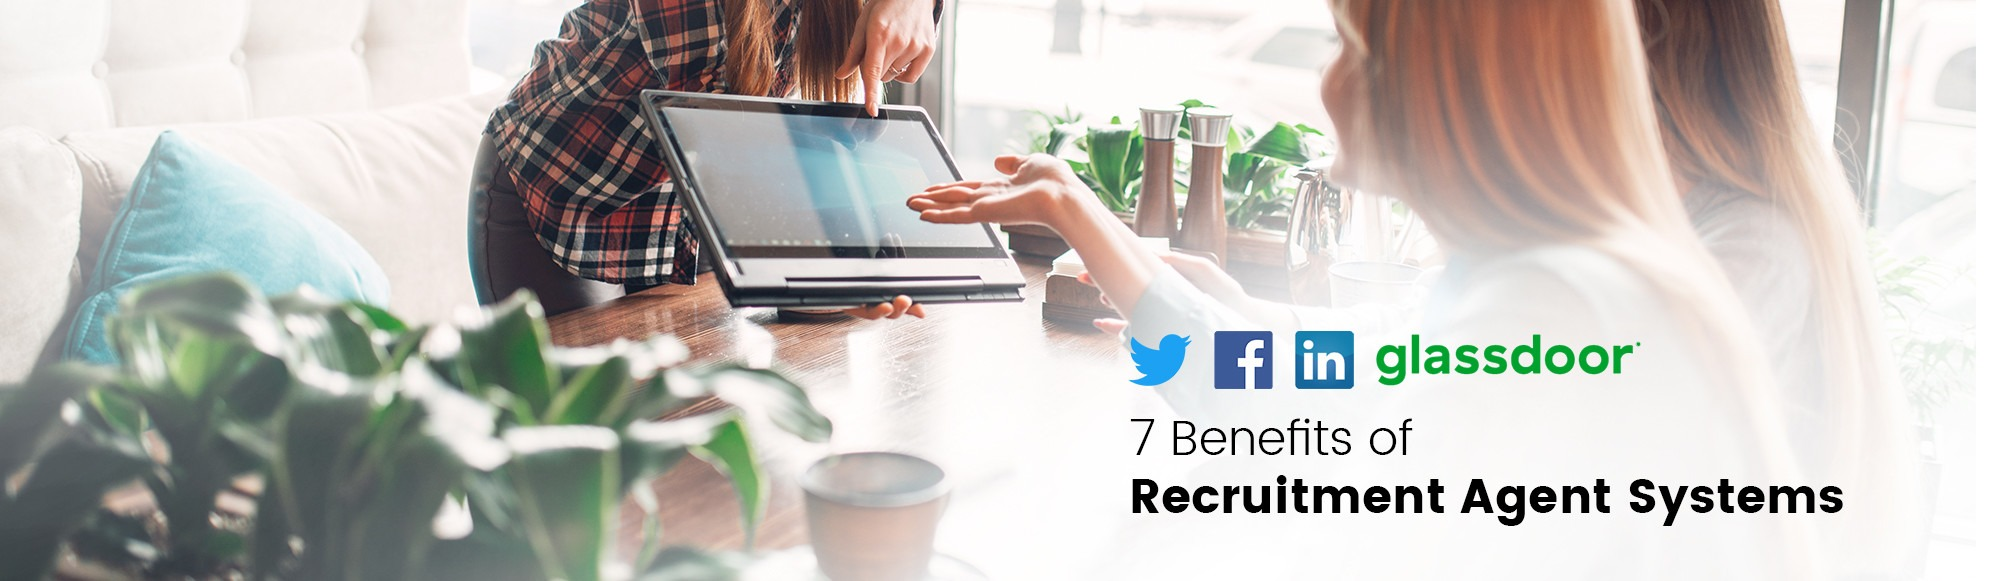 7 benefits of recruitment agent systems